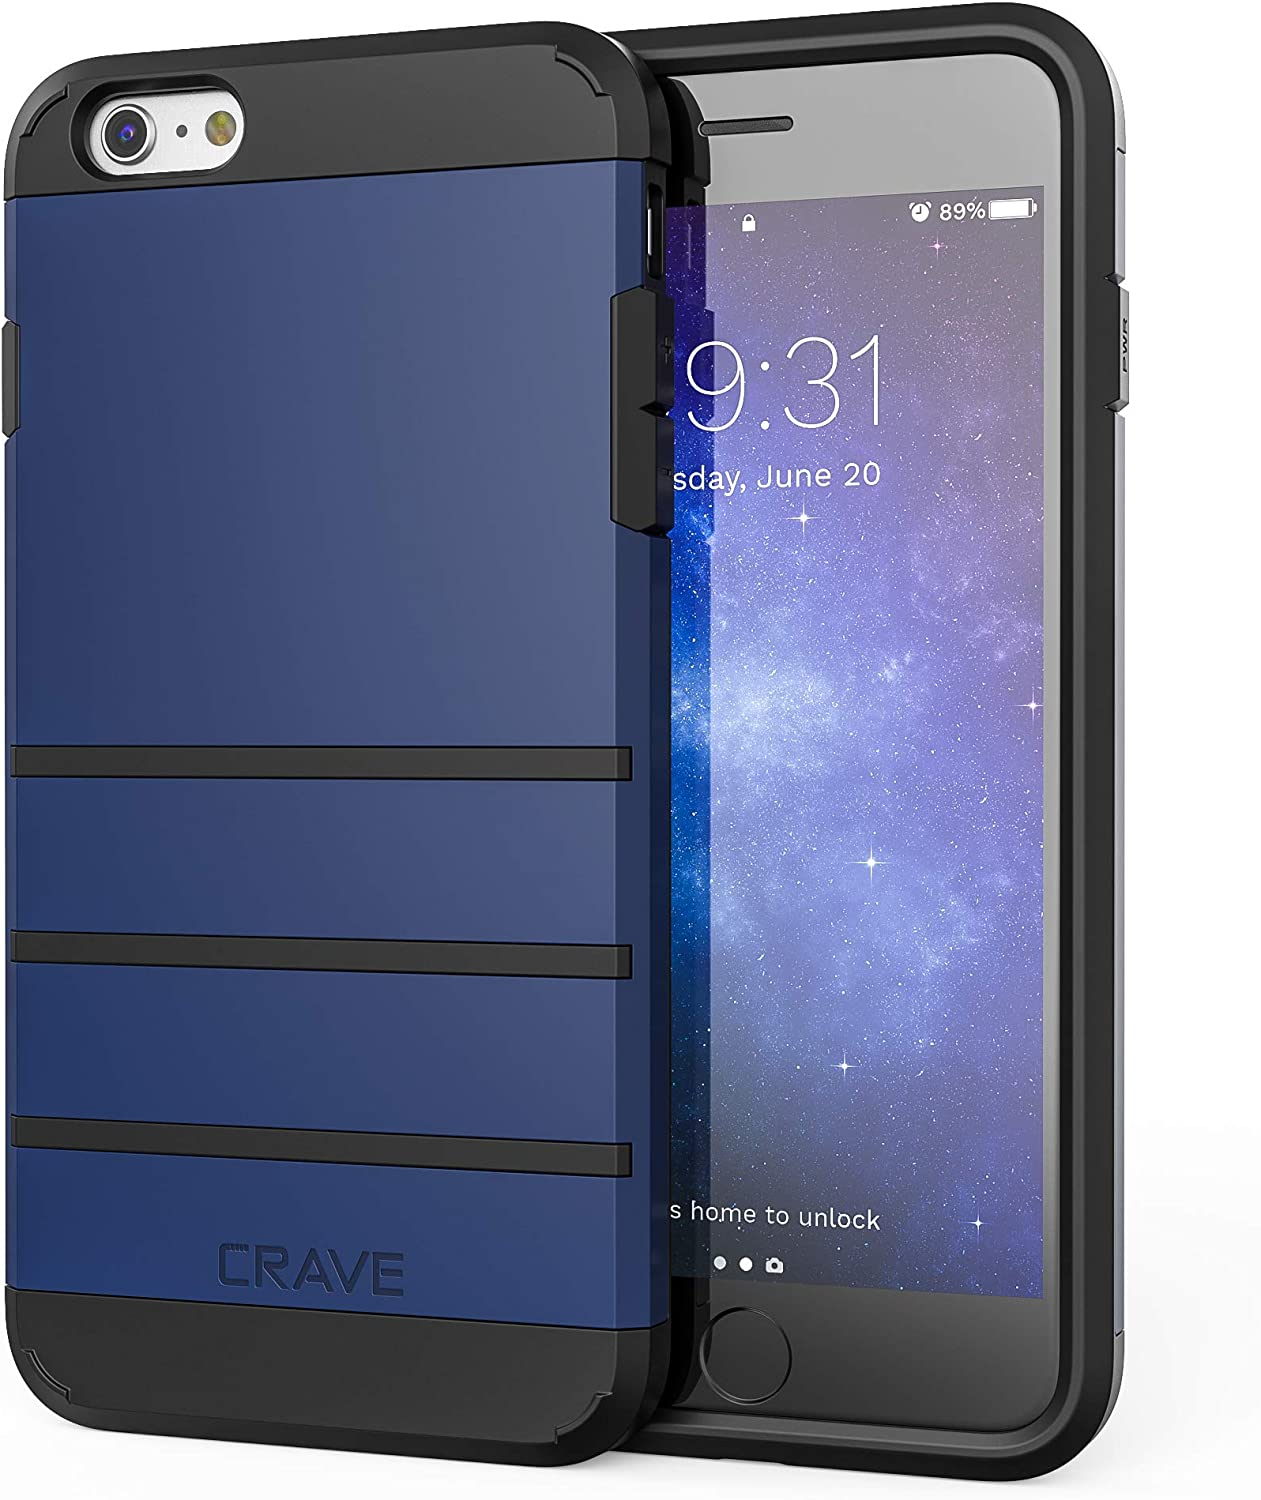 iPhone 6S Plus Case, iPhone 6 Plus Case, Crave Strong Guard Protection Series Case for iPhone 6 / 6s Plus (5.5 Inch) - Navy Blue